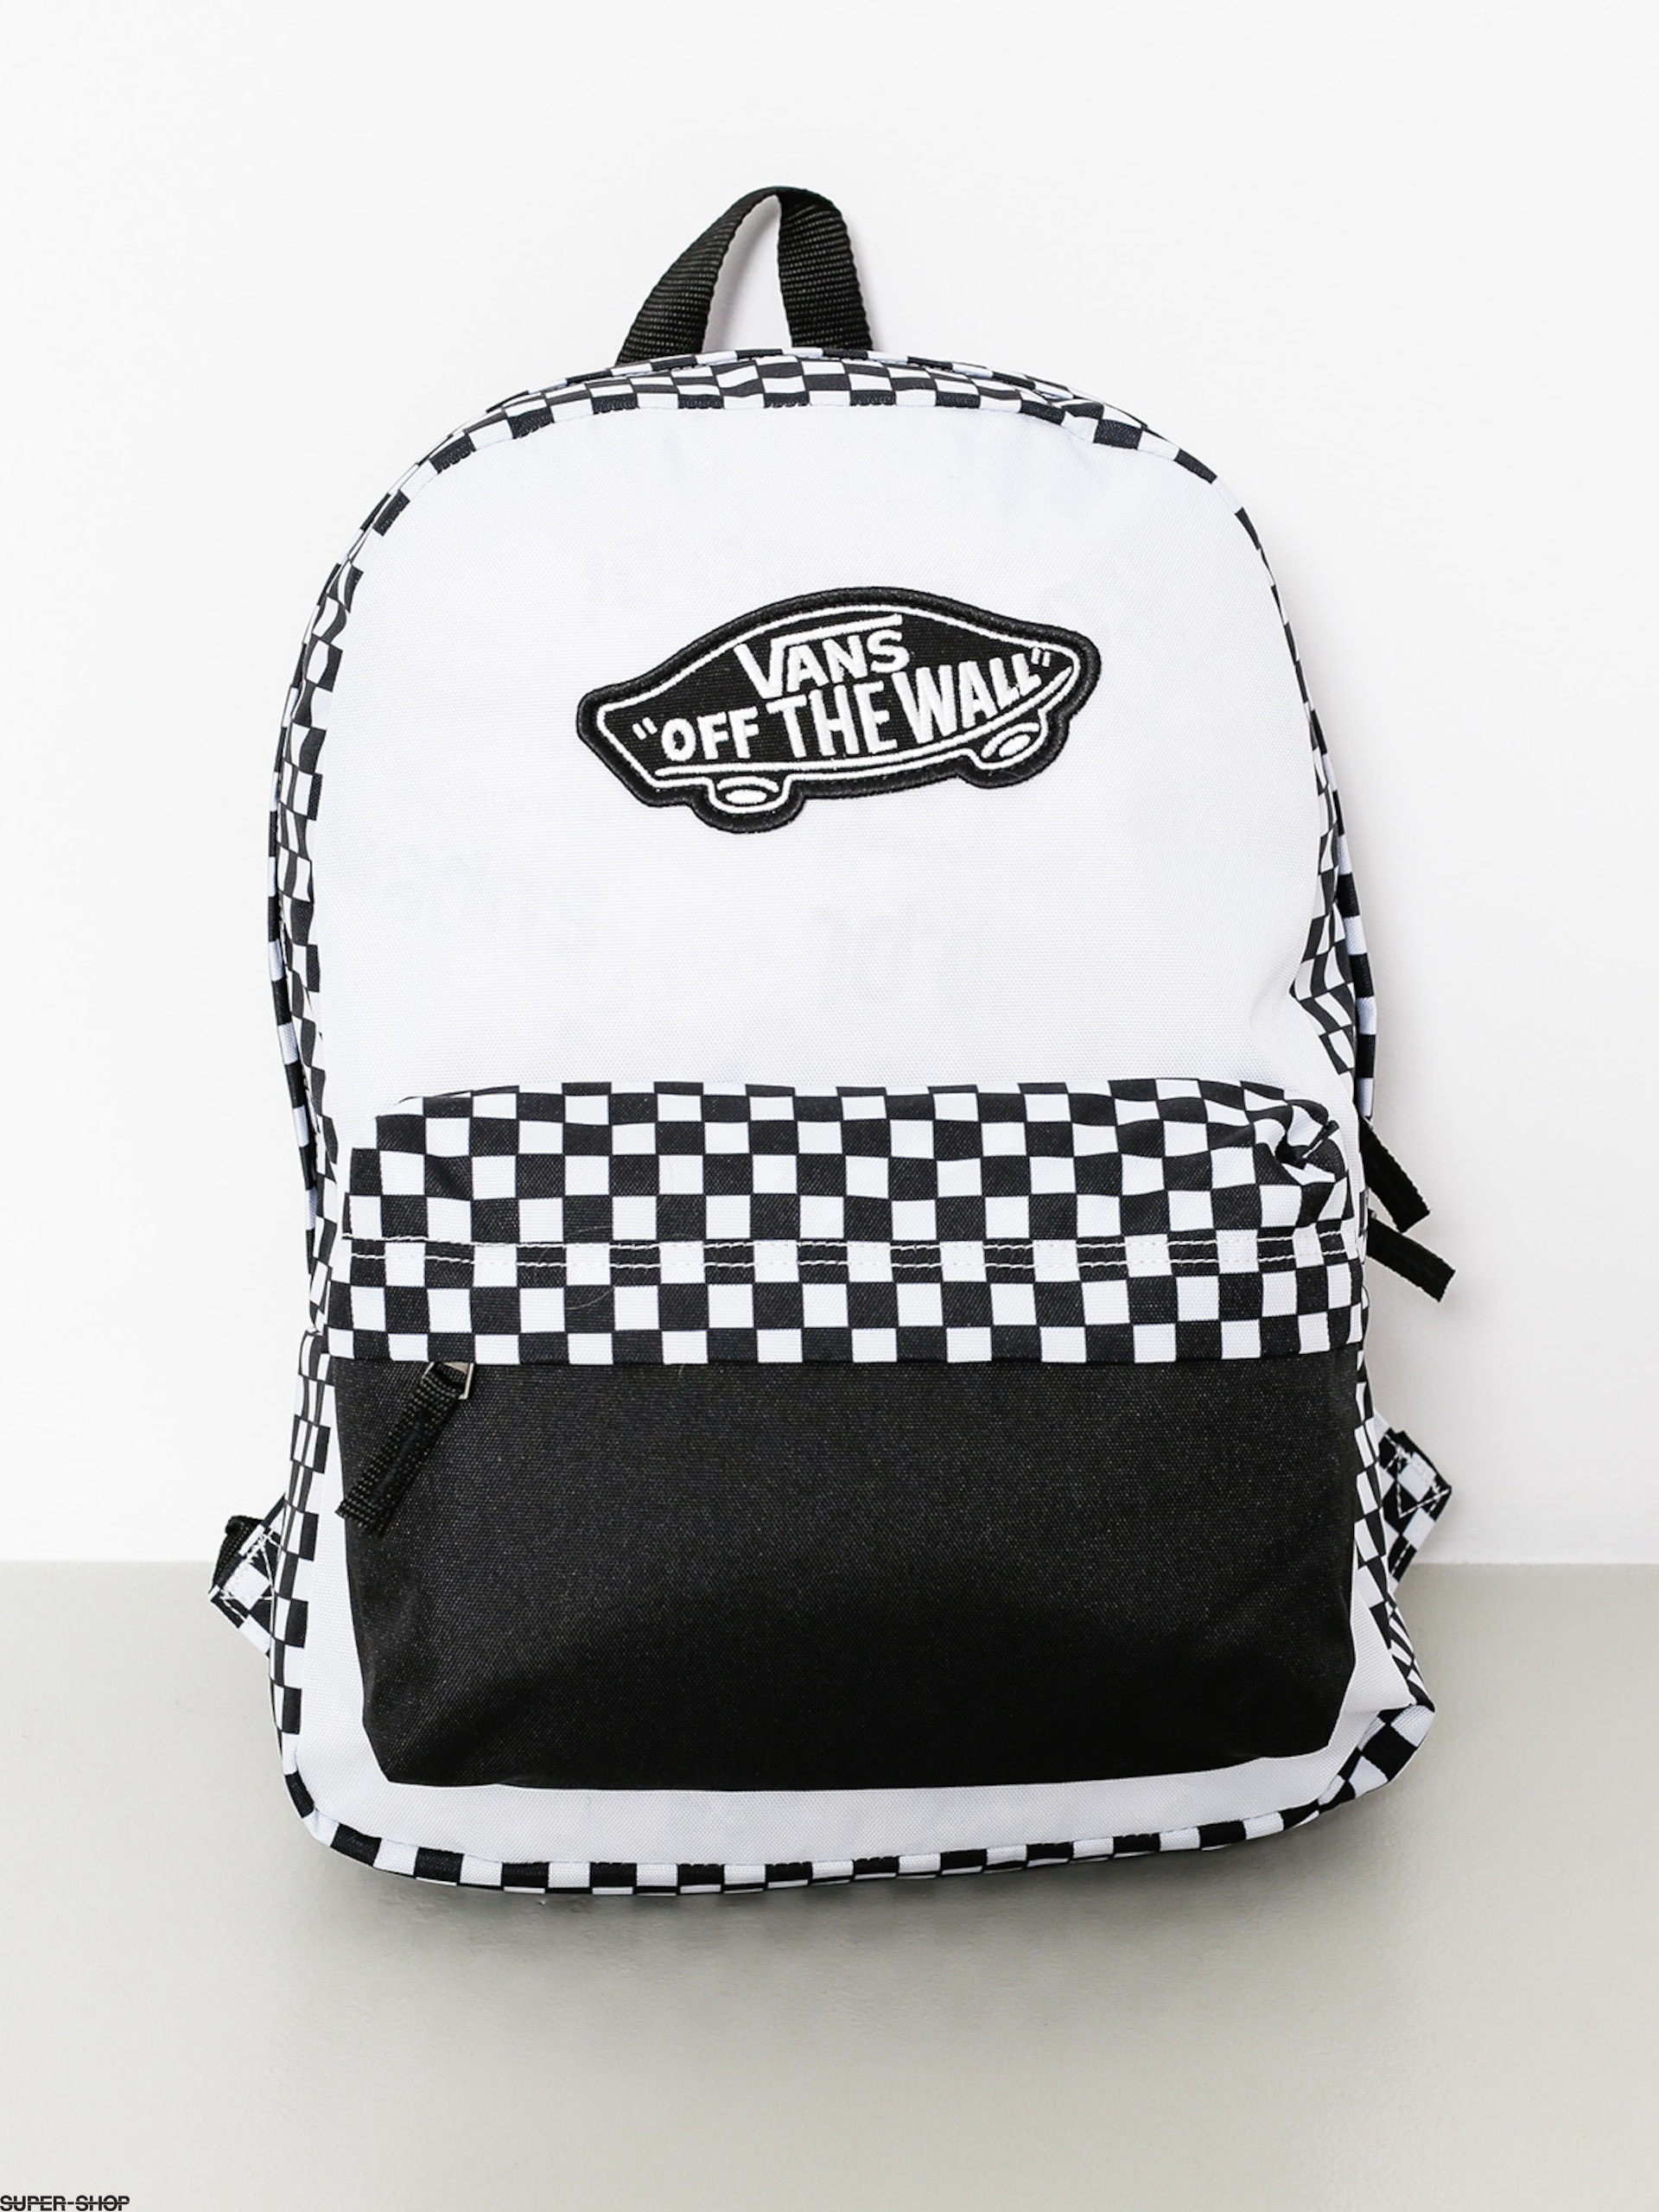 a3fa36ac409 Buy 2 OFF ANY black and white checkered vans bag CASE AND GET 70% OFF!